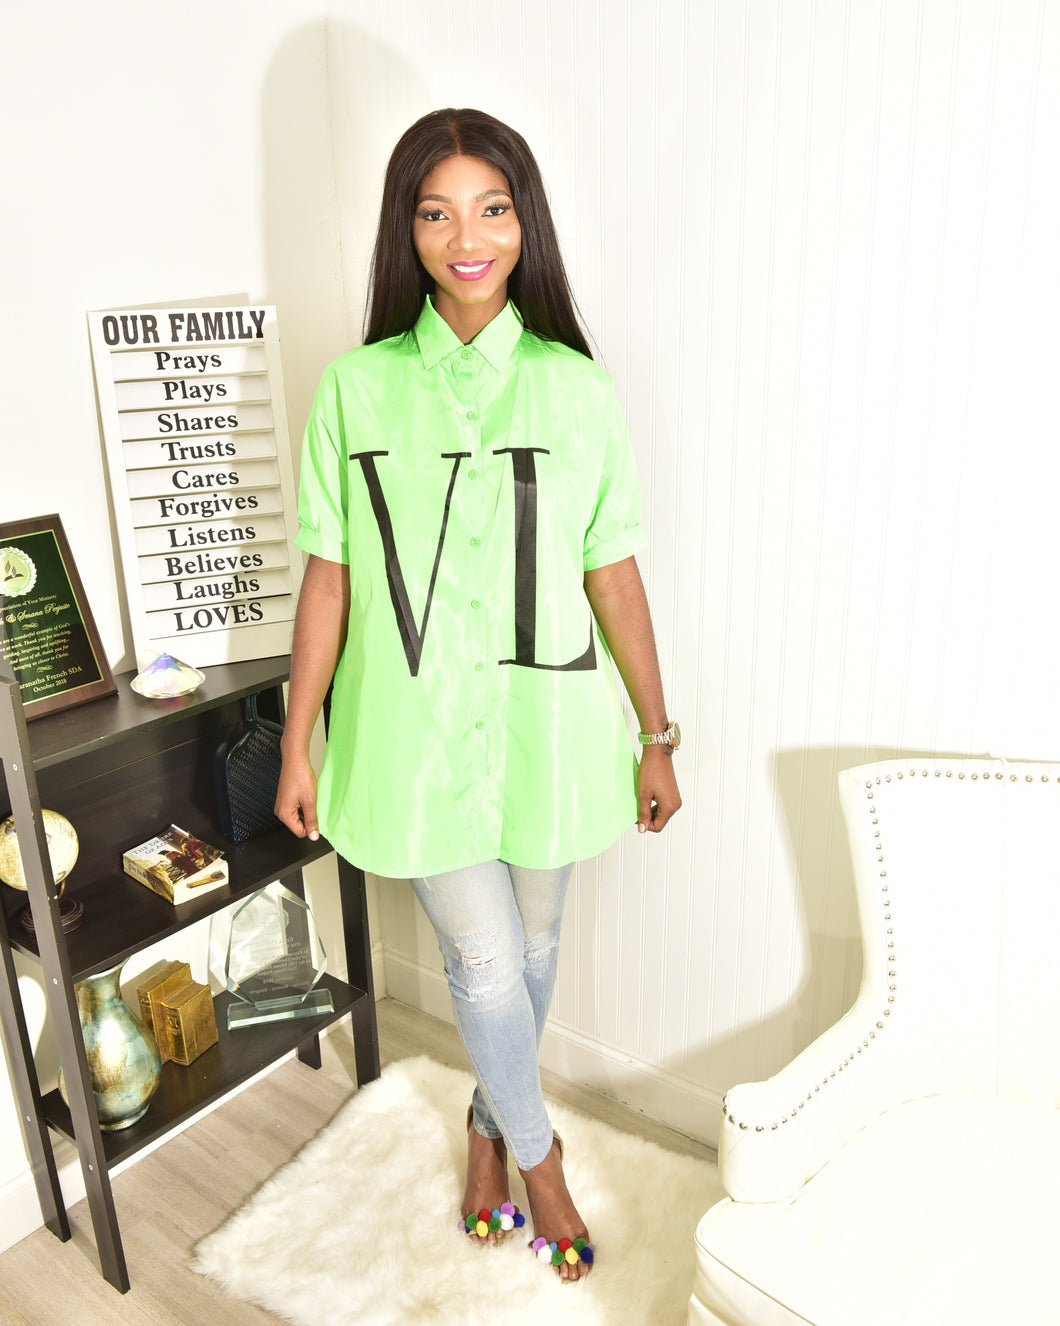 Neon green top - Modestapparels